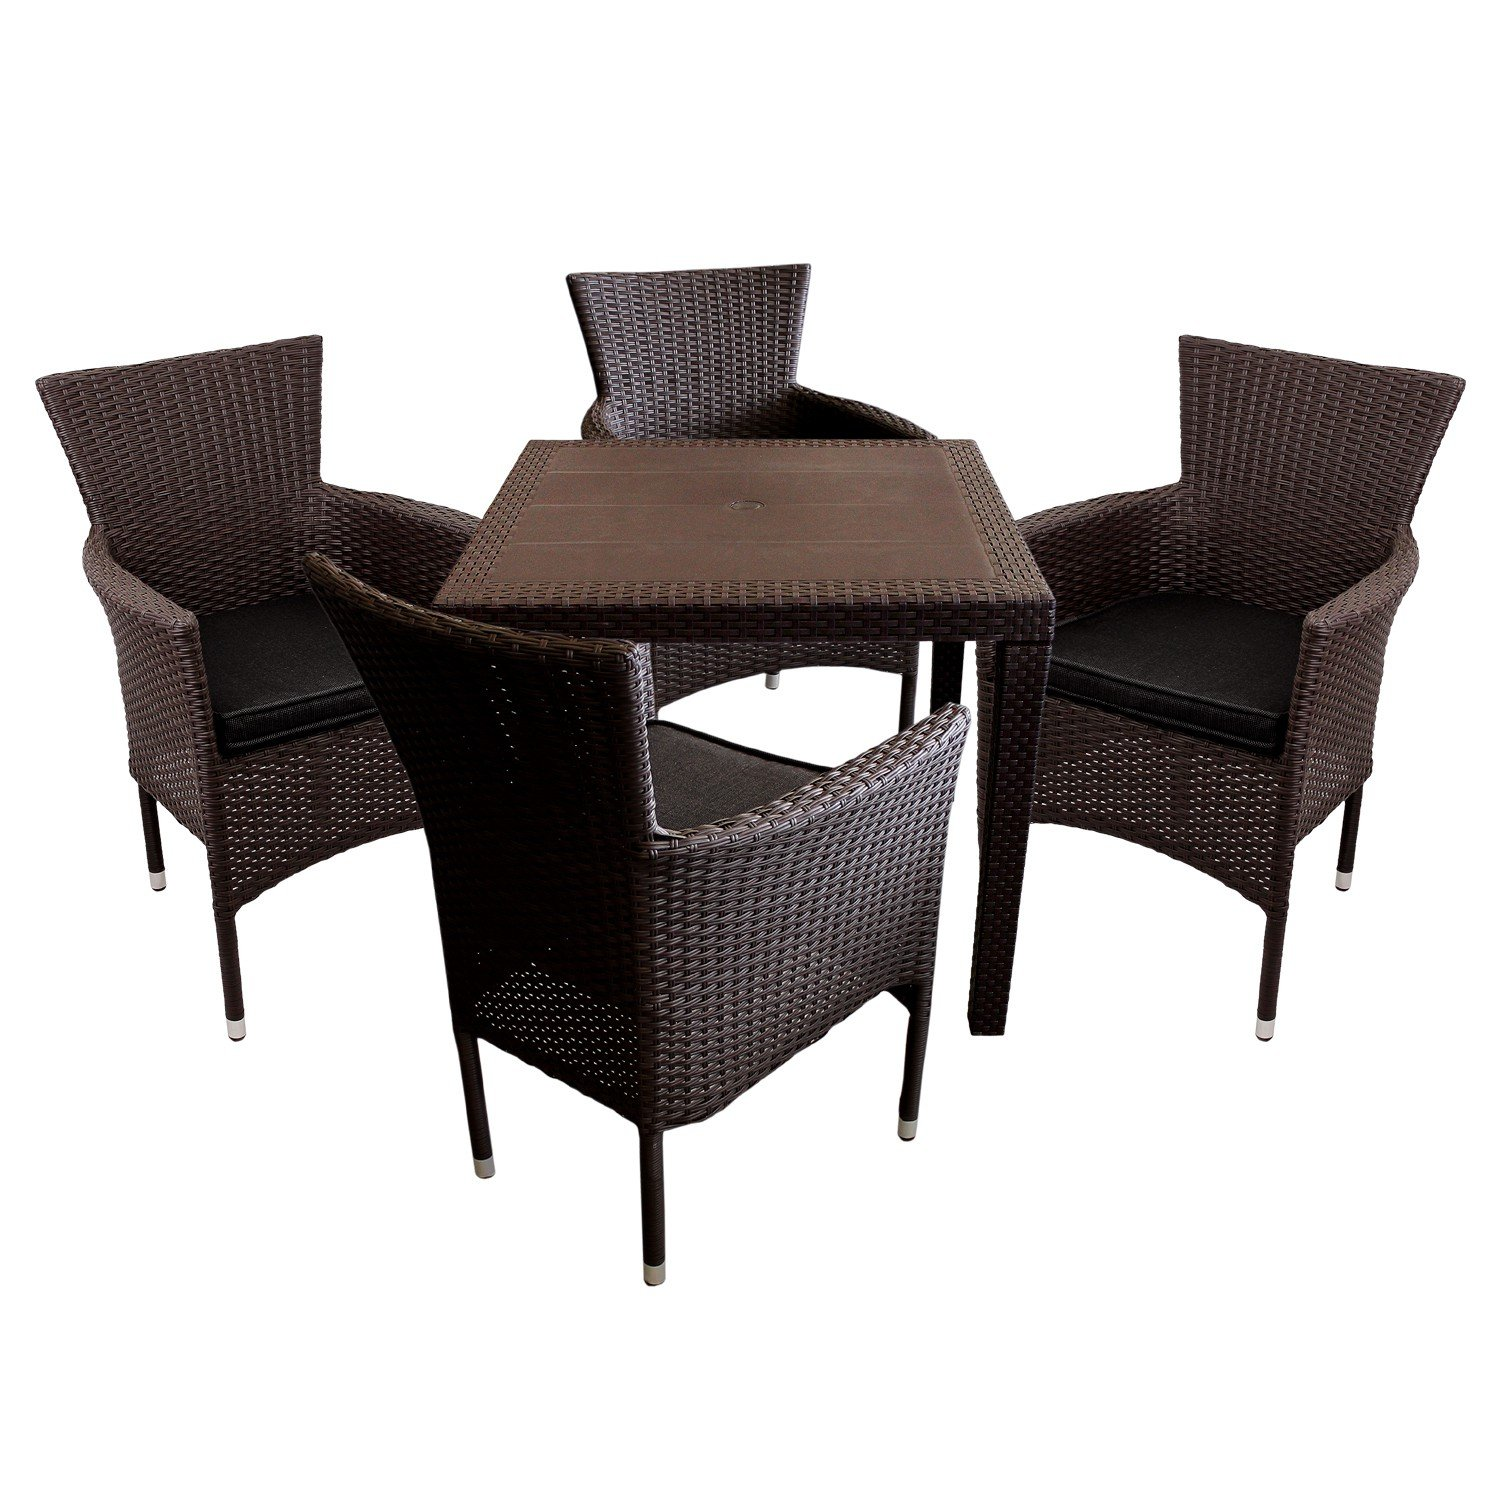 5tlg balkonm bel set gartentisch vollkunststoff rattan optik 79x79cm 4x gartensessel poly. Black Bedroom Furniture Sets. Home Design Ideas